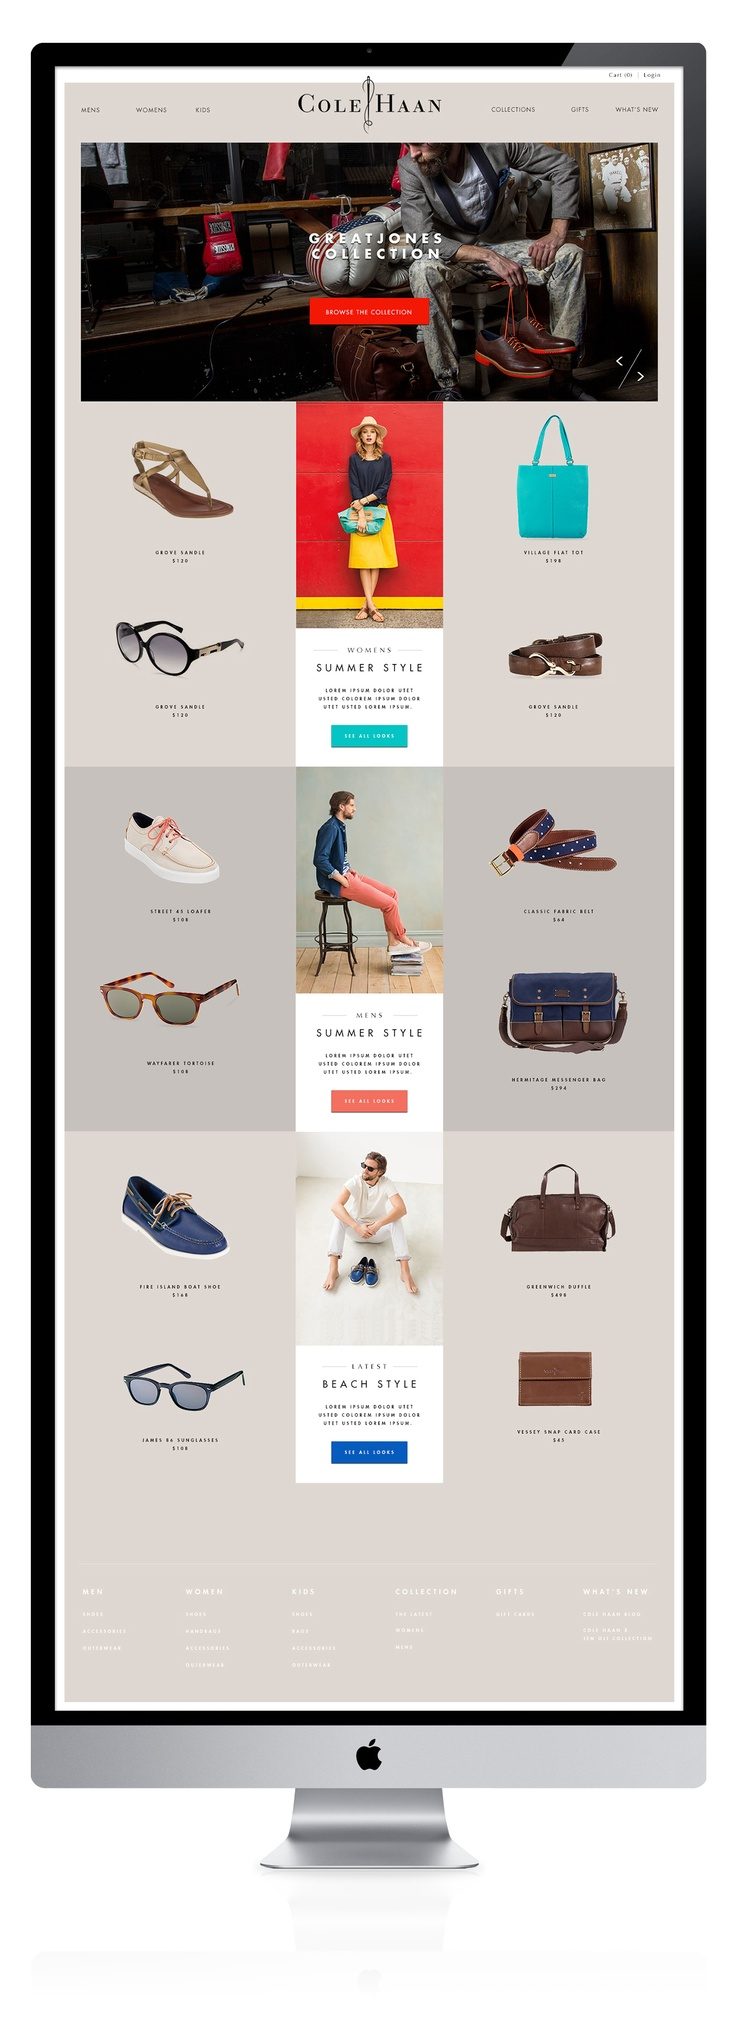 colehaan_home.jpg | #webdesign